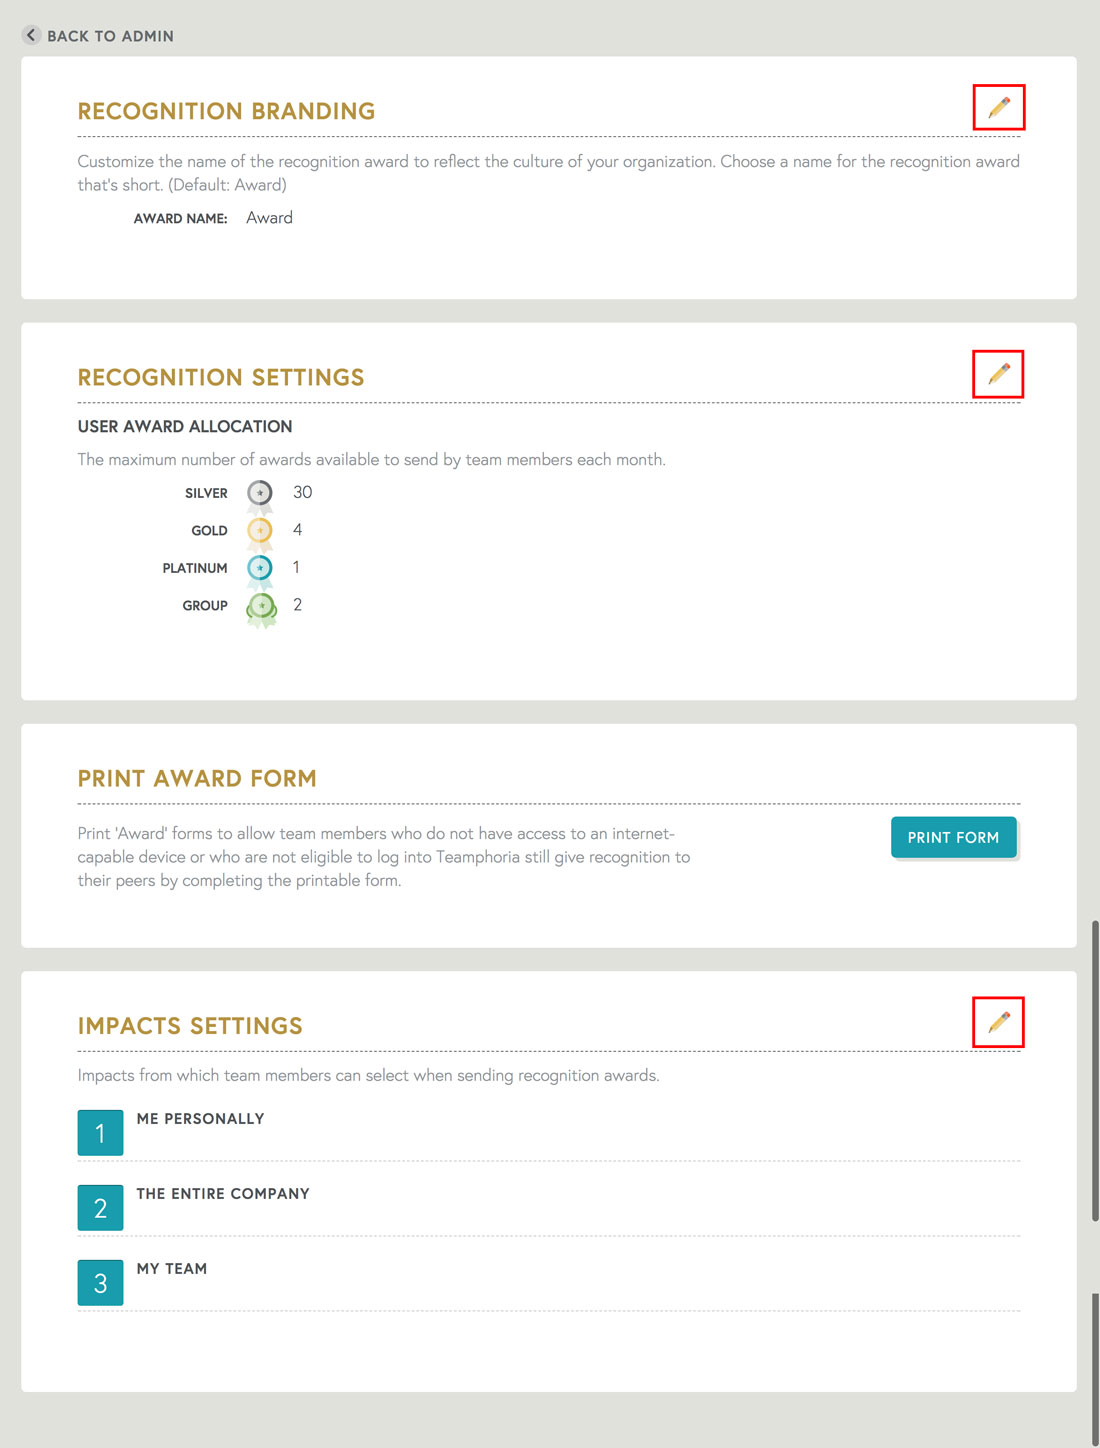 employee recognition templates allow you to choose allotment, employee recognition name and types